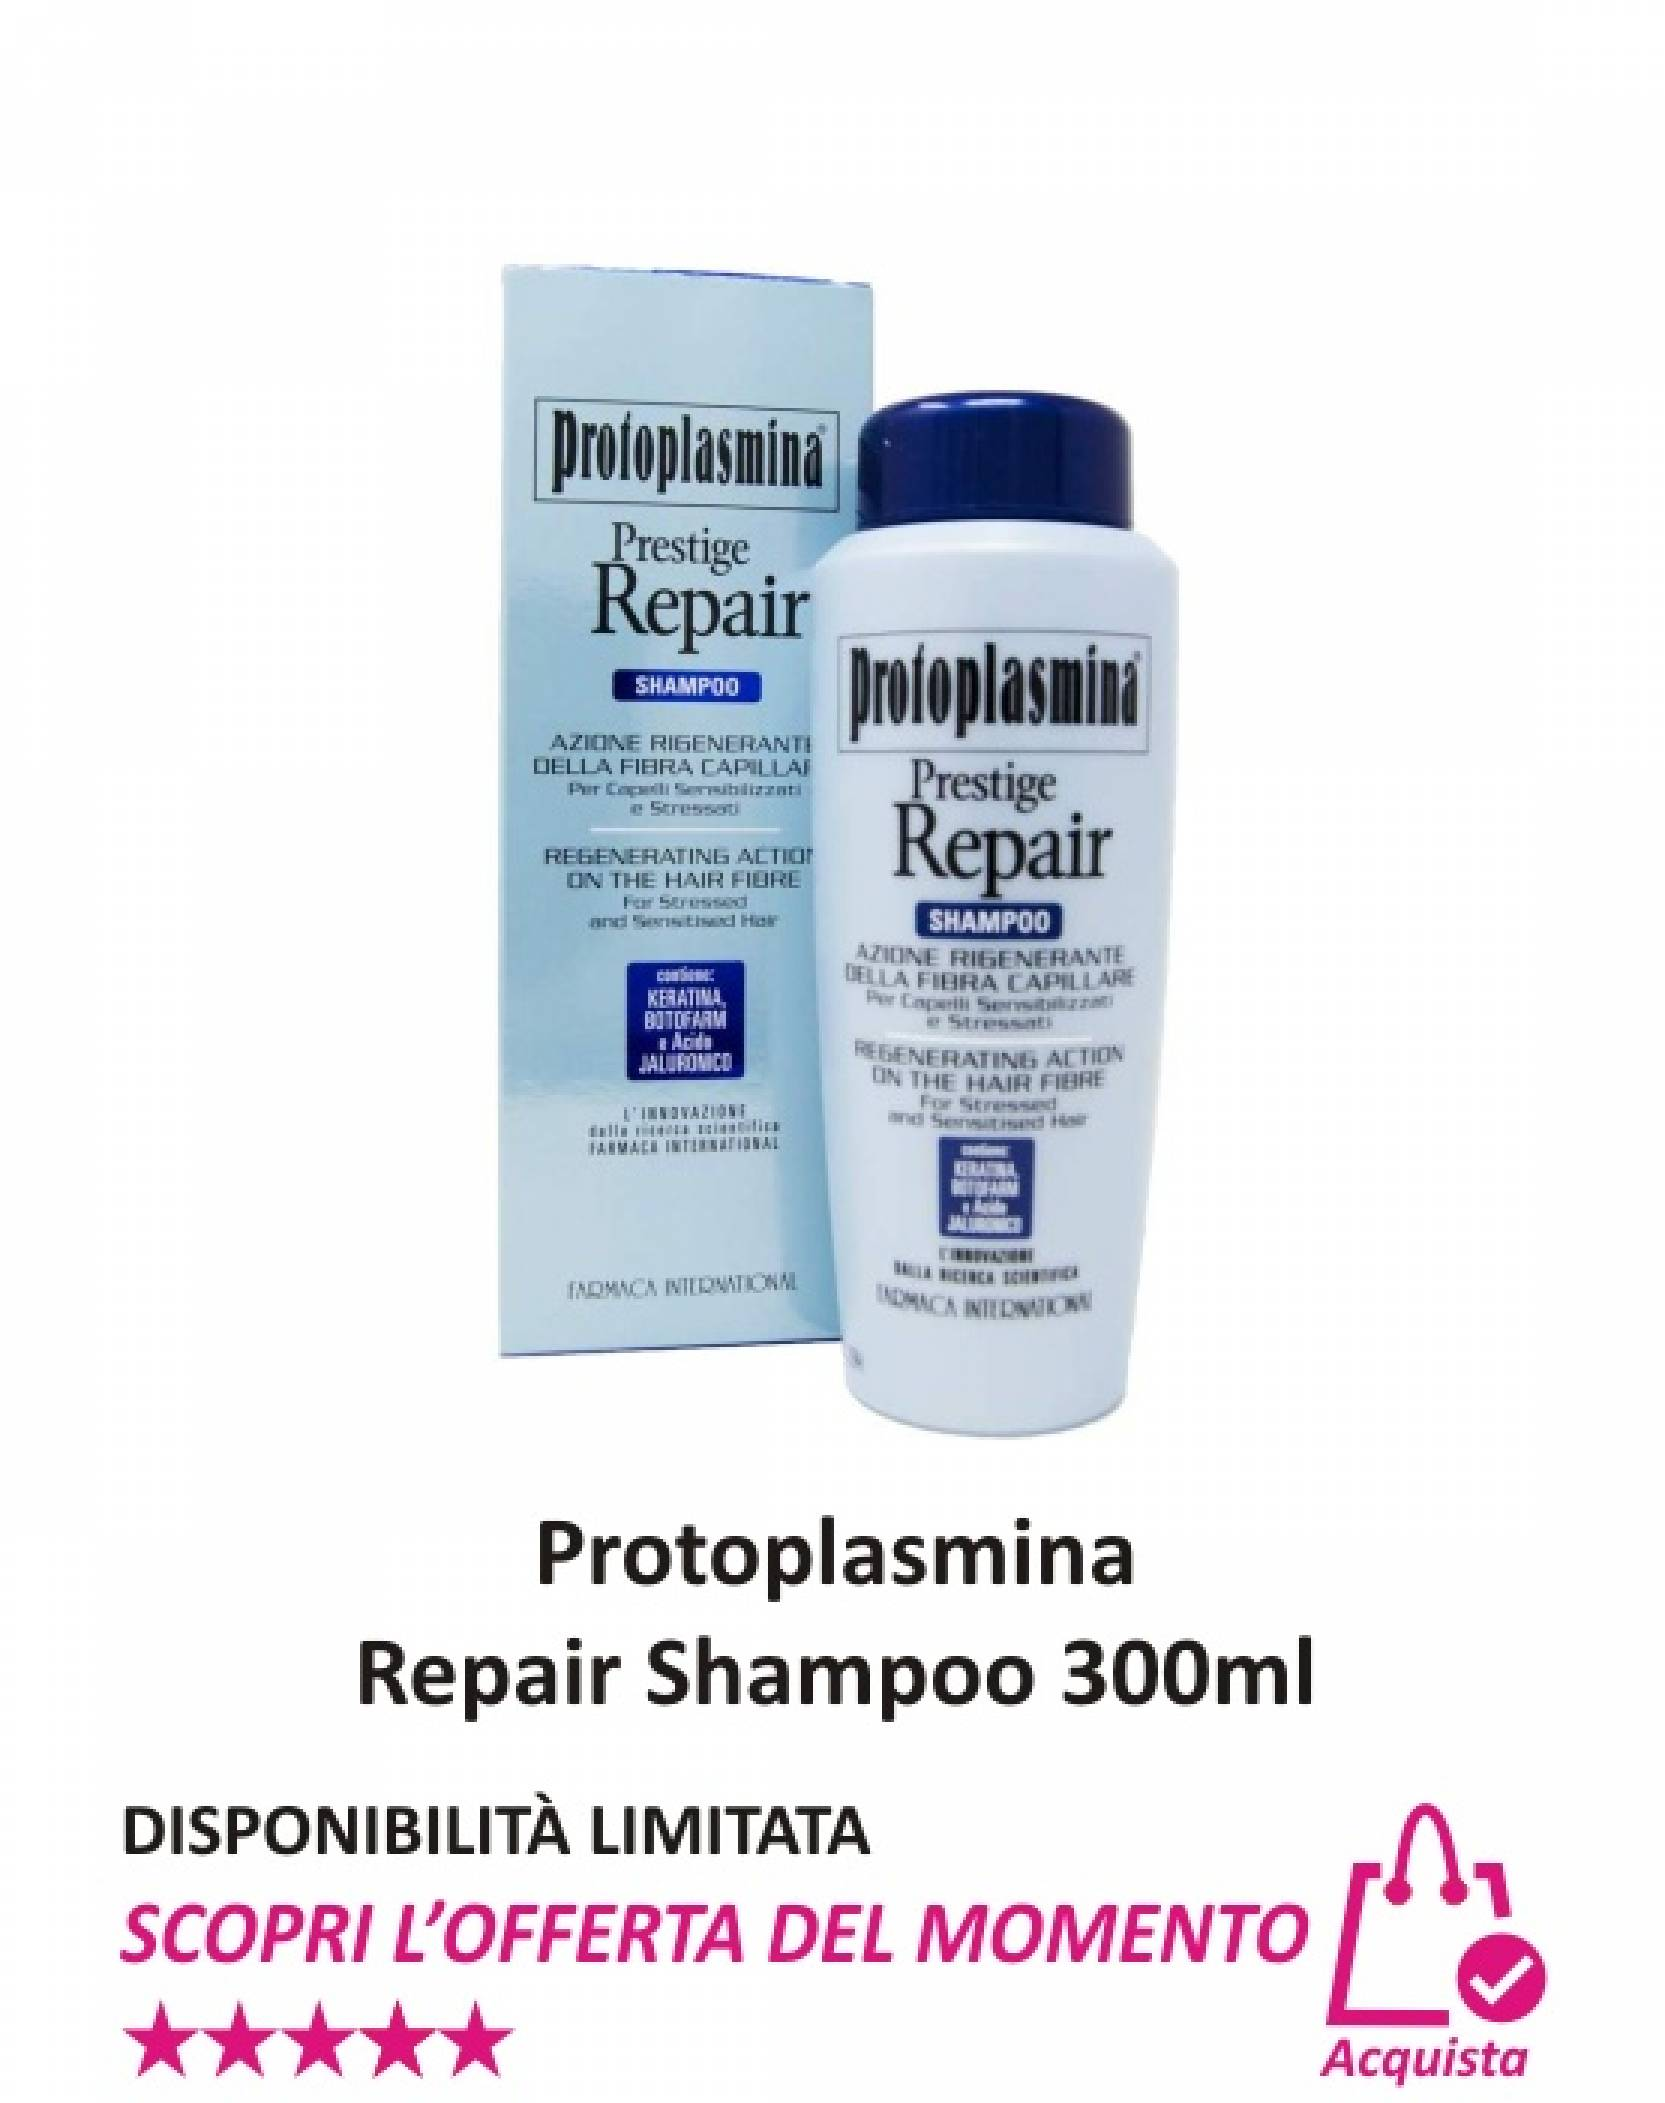 Protoplasmina Repair Shampoo 300 ml